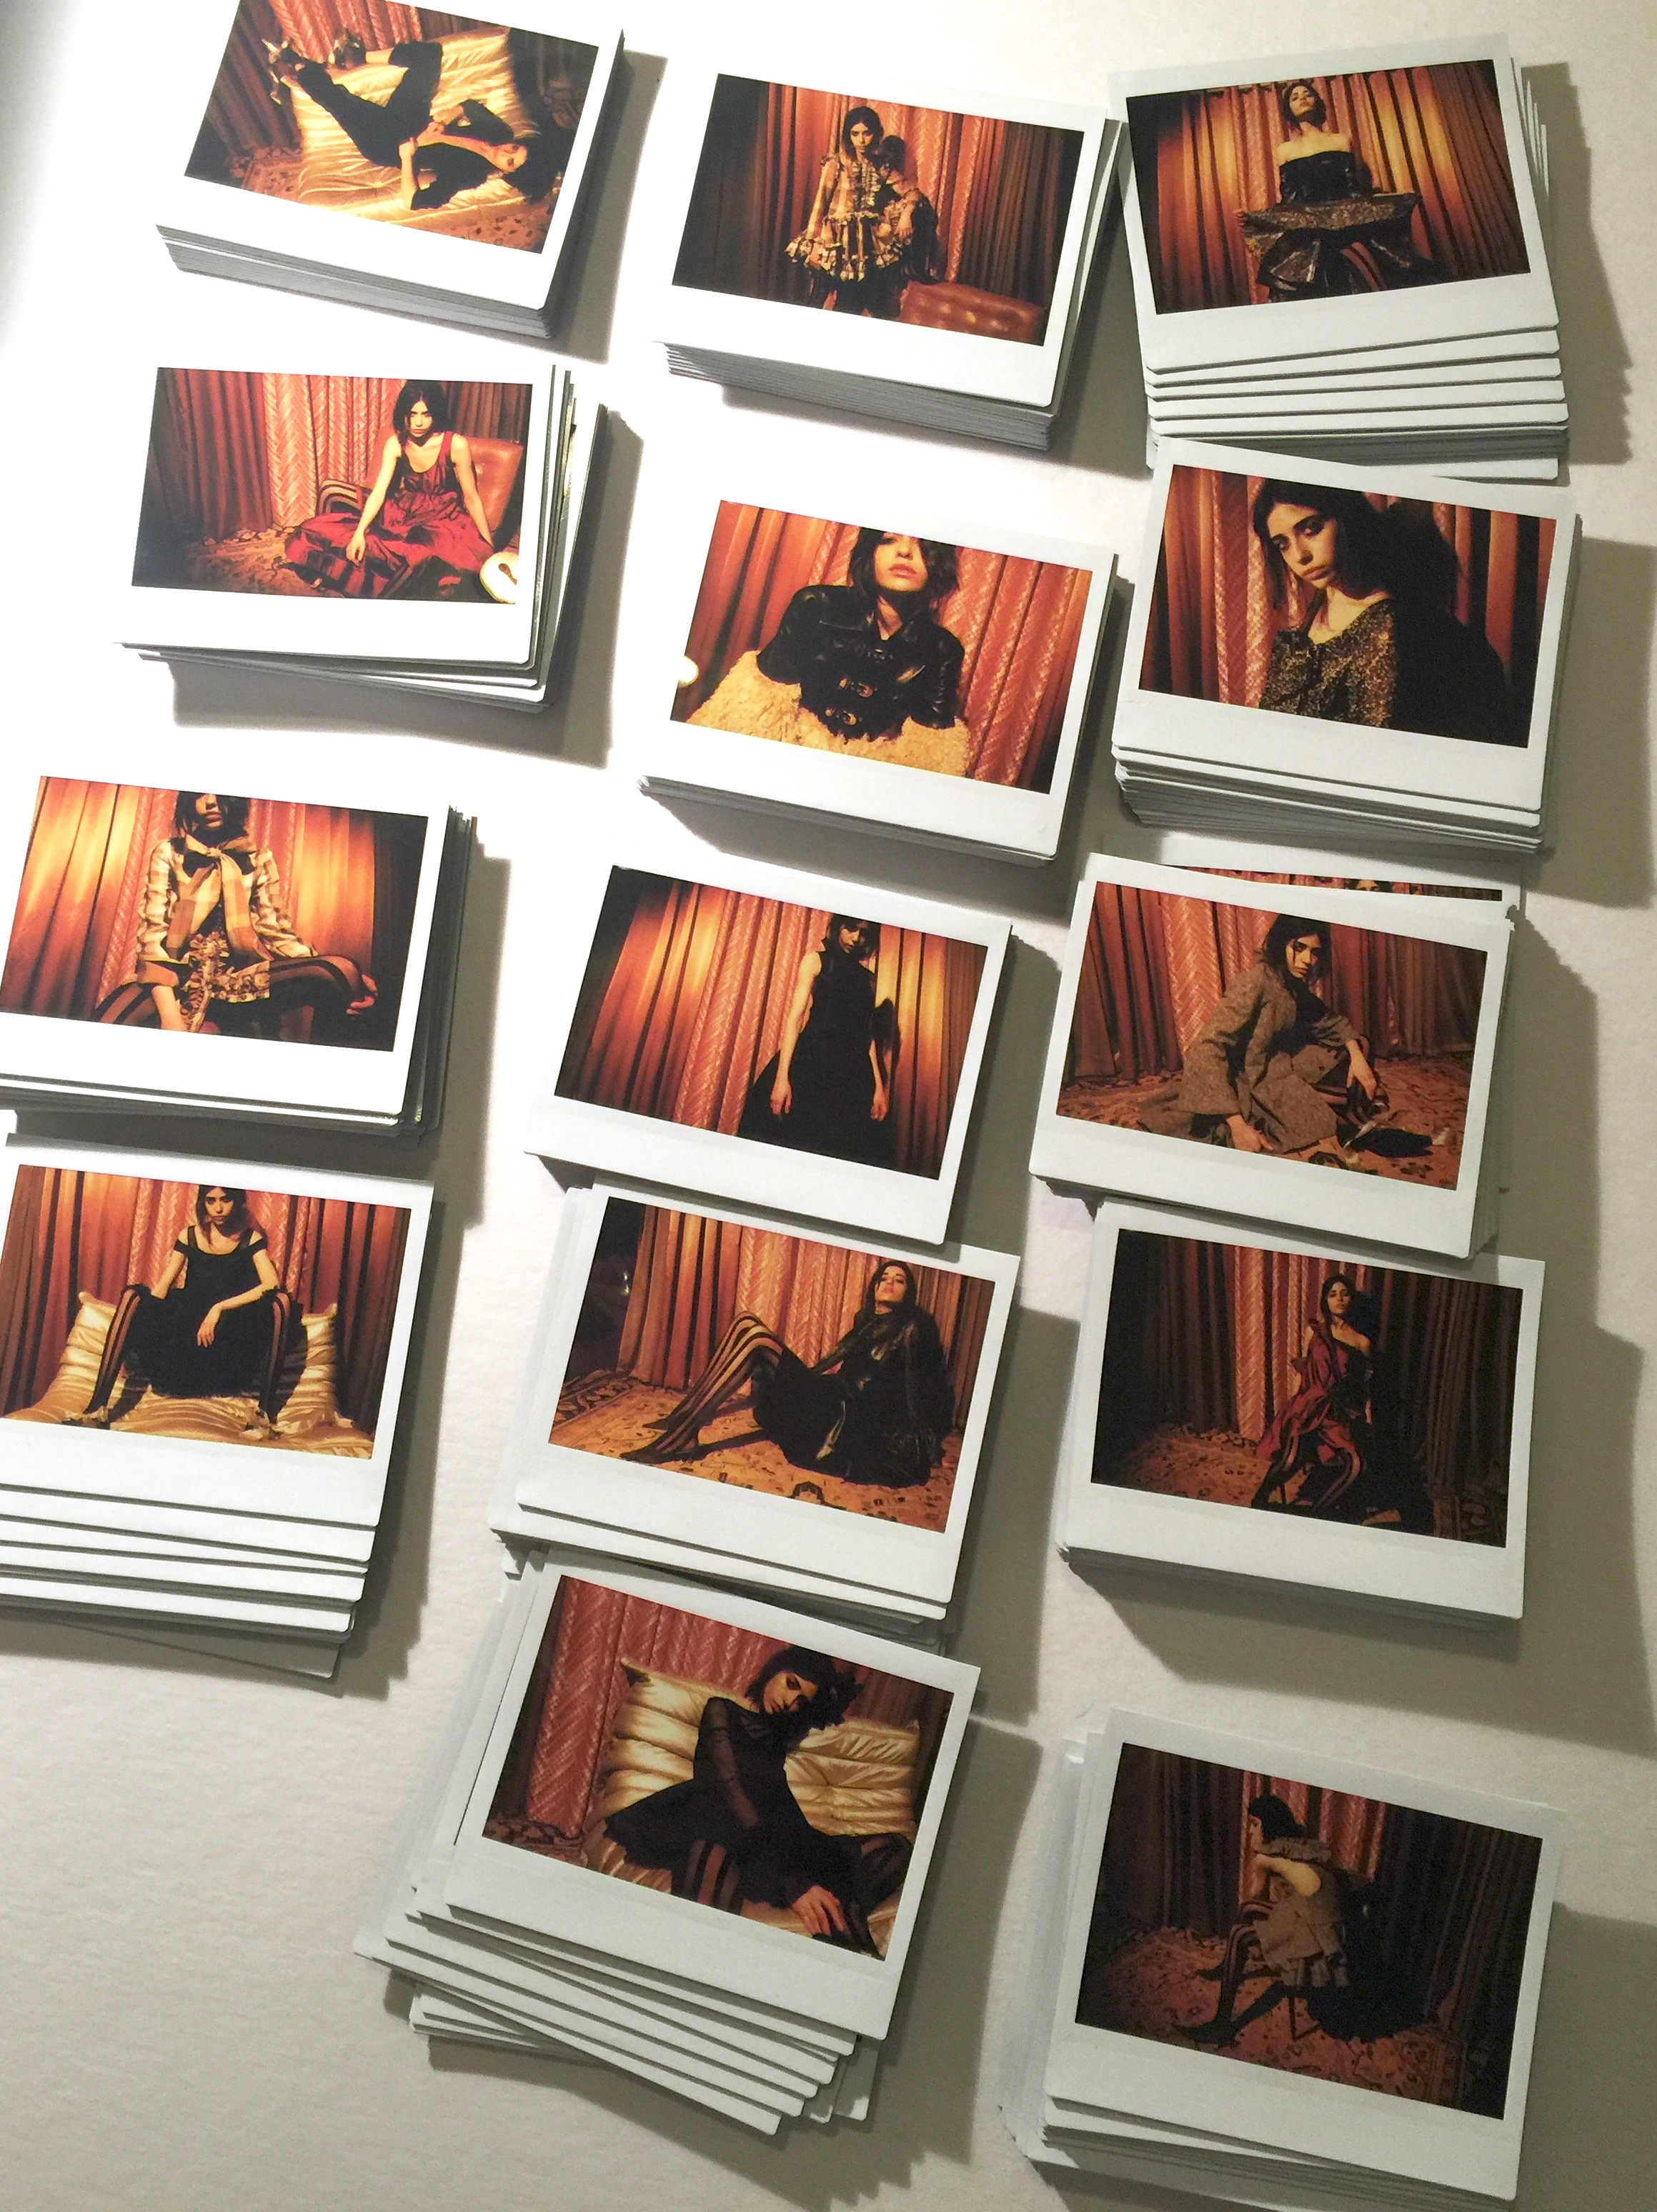 fuji film instax originals from campaign photoshoot January 2016 by Lloyd Stevie for Kelsey Randall